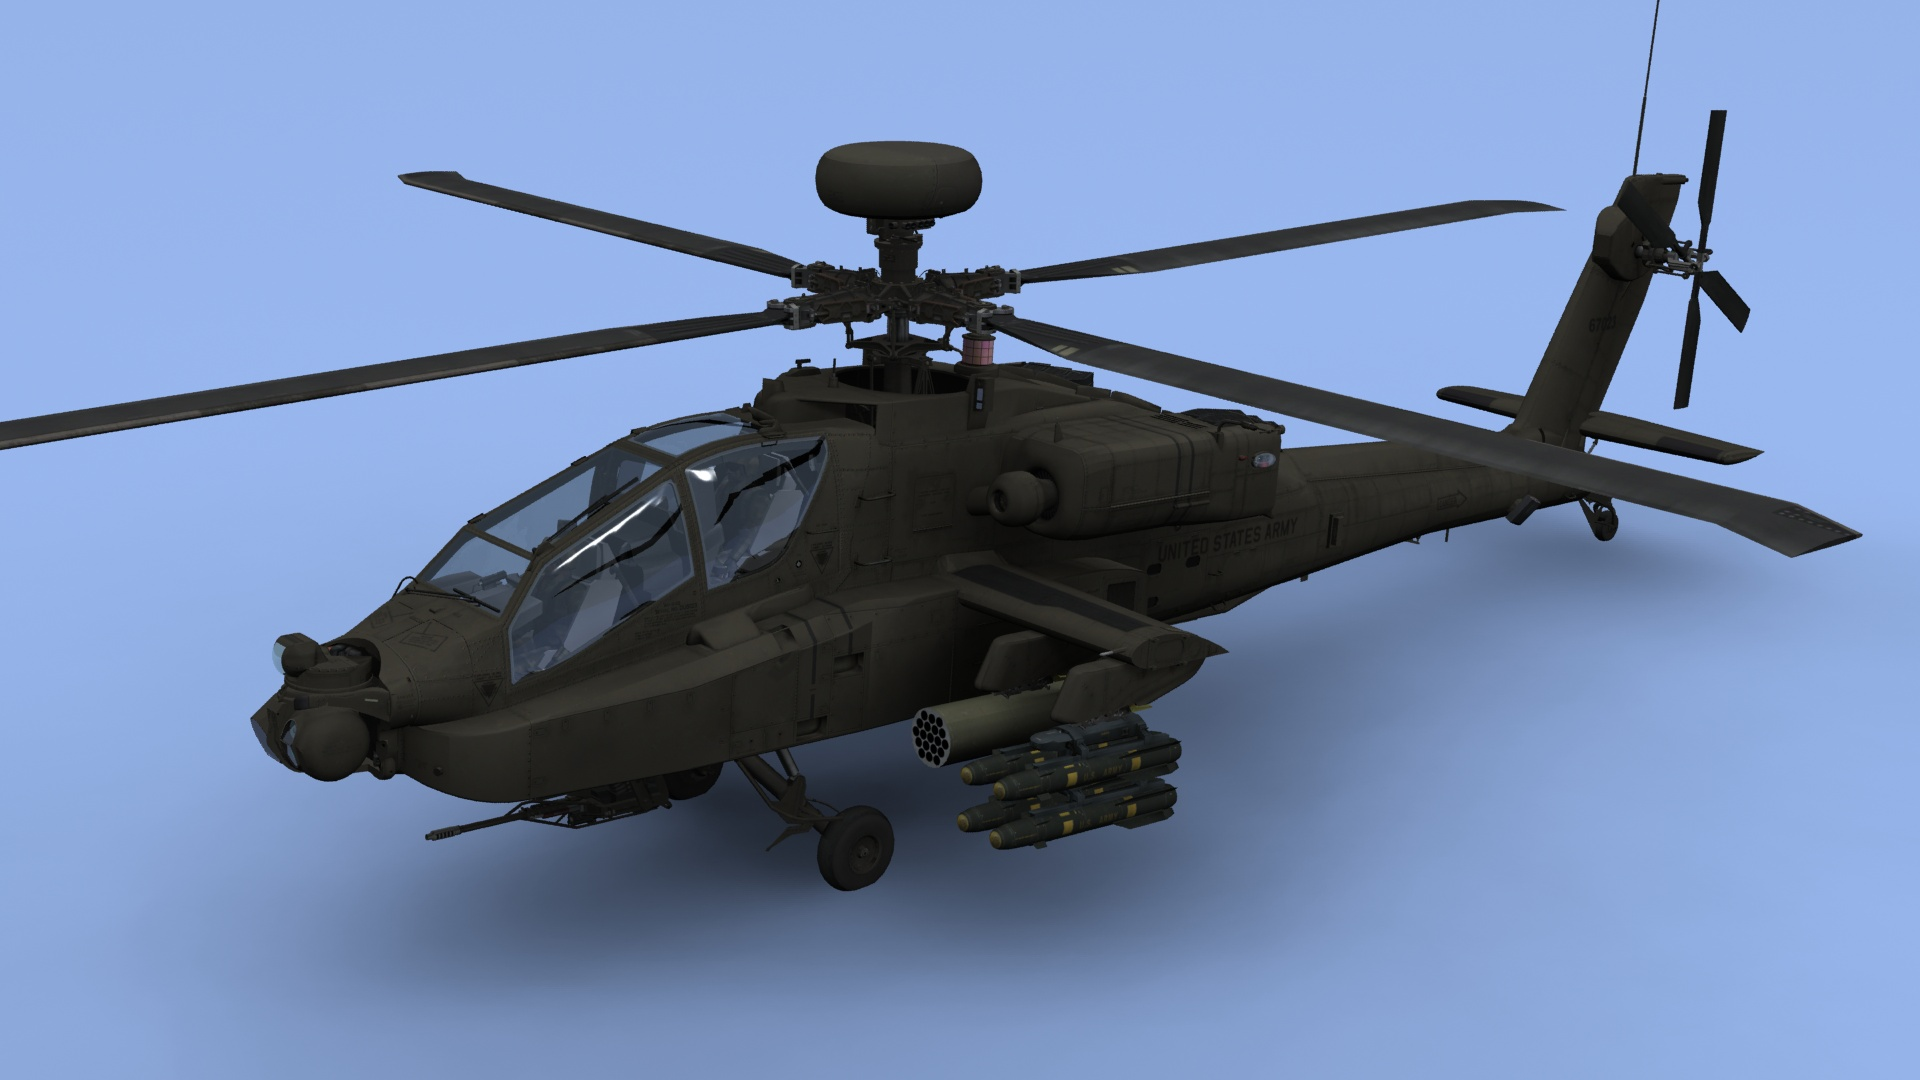 AH64D Apache Longbow US Army Helicopter 3D modelApache Longbow Helicopter